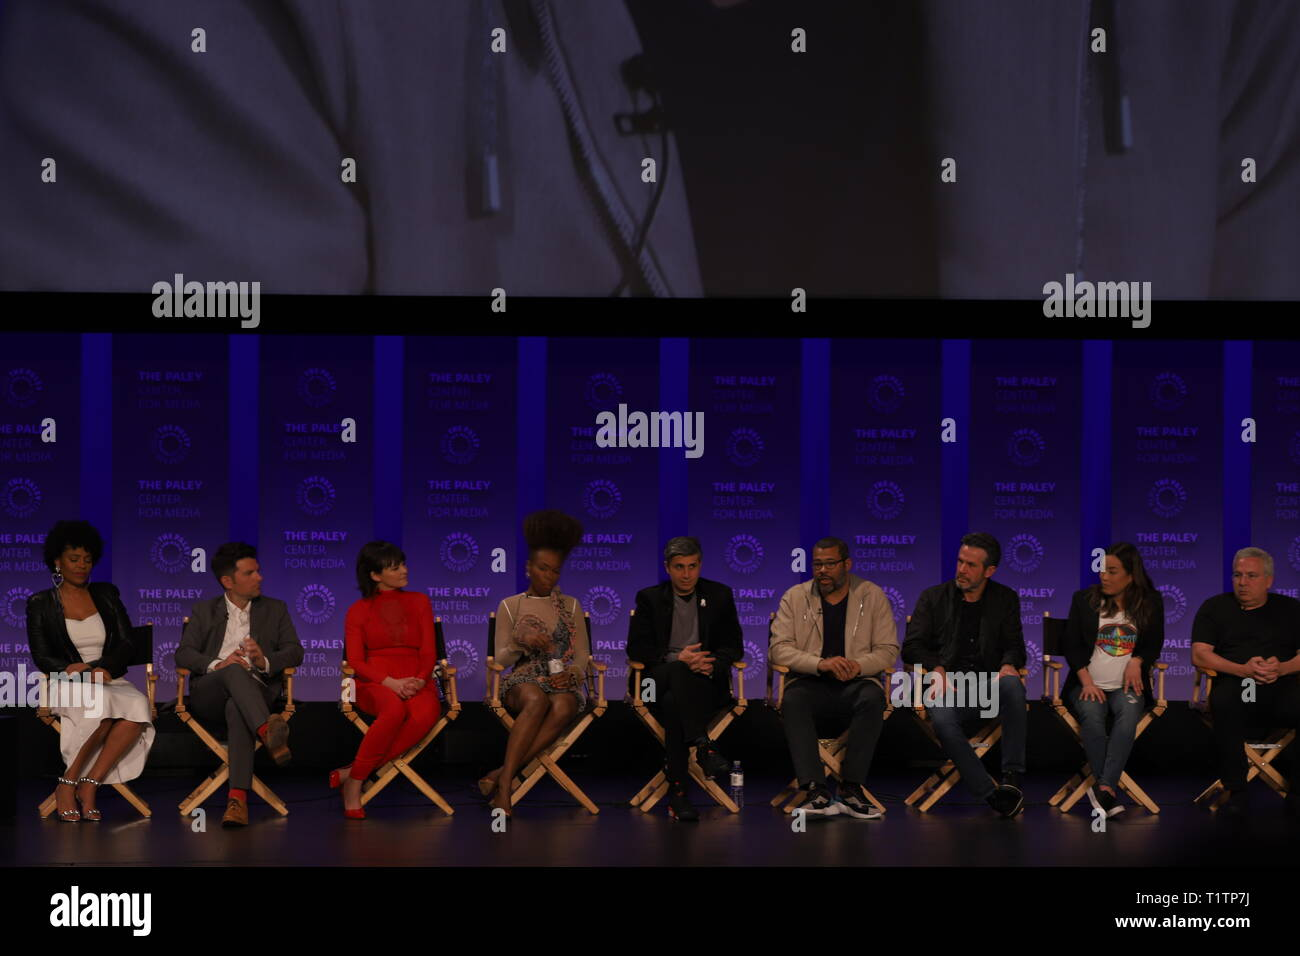 HOLLYWOOD - MARCH 24, 2019: Producer Jordan Peele and the cast of 'The Twilight Zone' discuss their favorite episodes of Rod Serling's classic series. - Stock Image